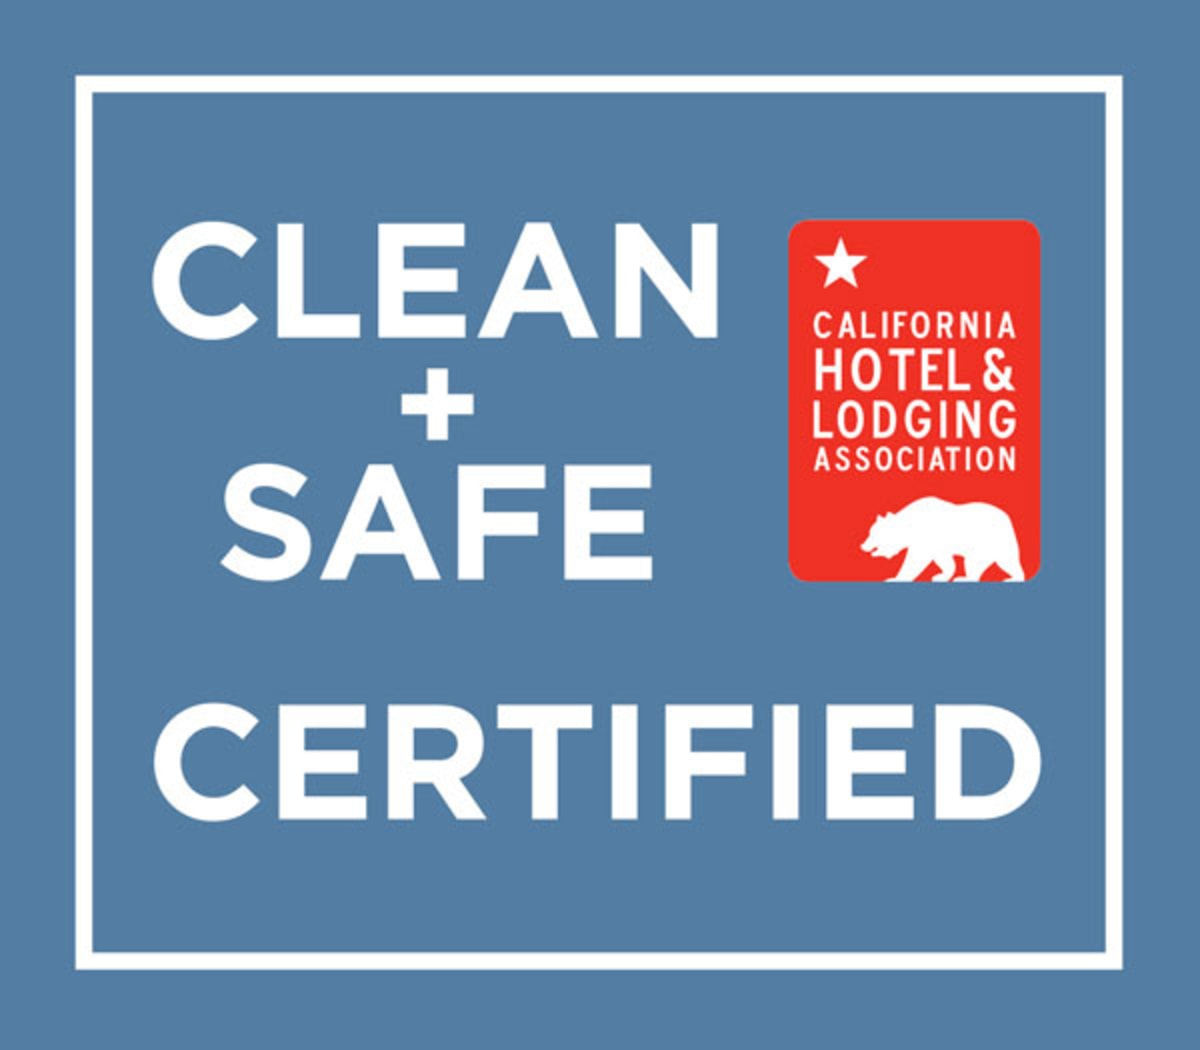 CHLA-CleanSafeCertified-600x525